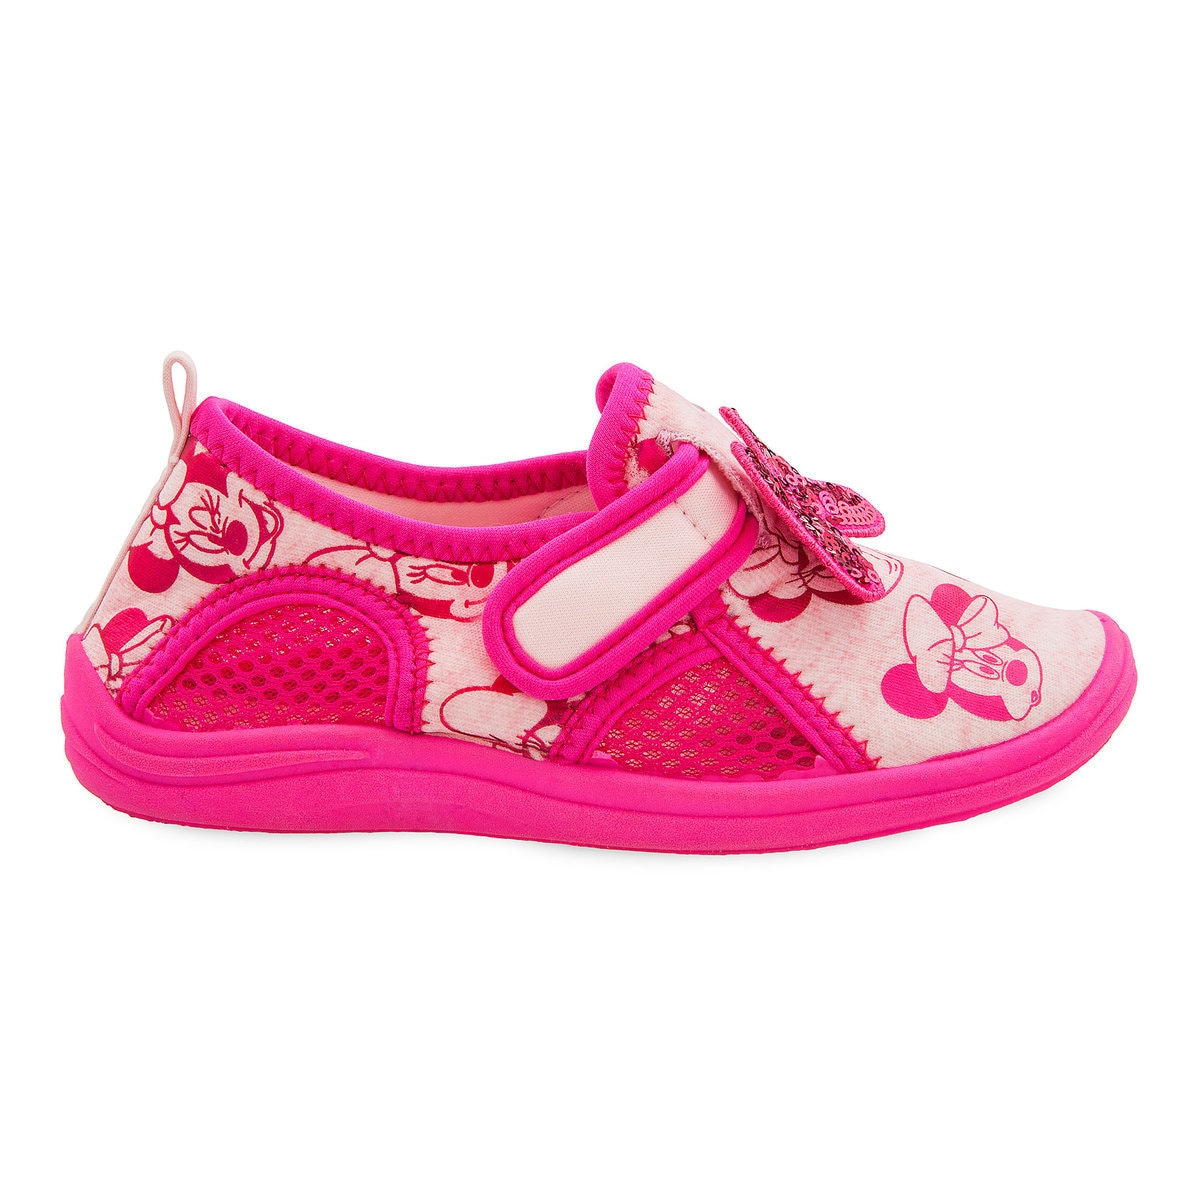 2e382ed4c671 Product Image of Minnie Mouse Pink Swim Shoes for Kids   2